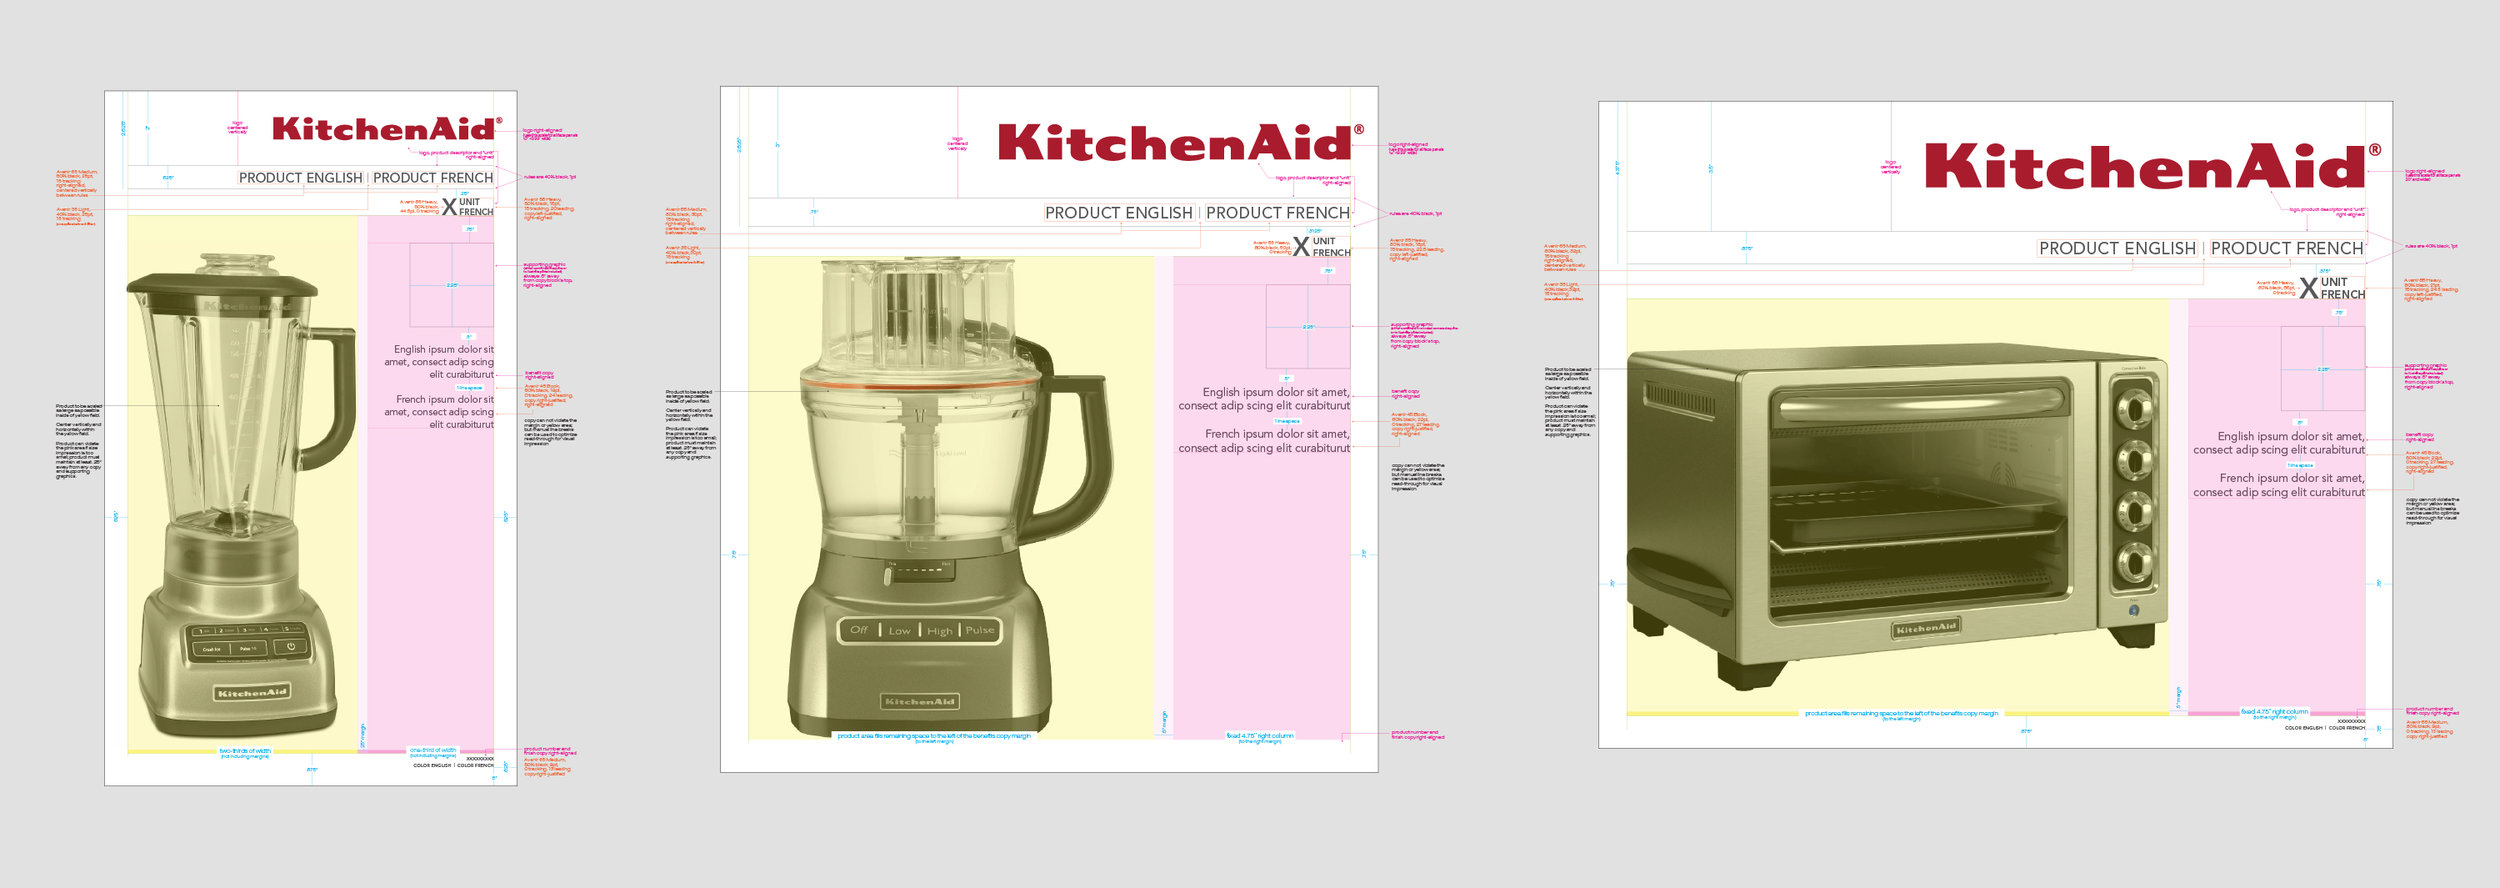 KitchenAid_Website_Imagery.jpg